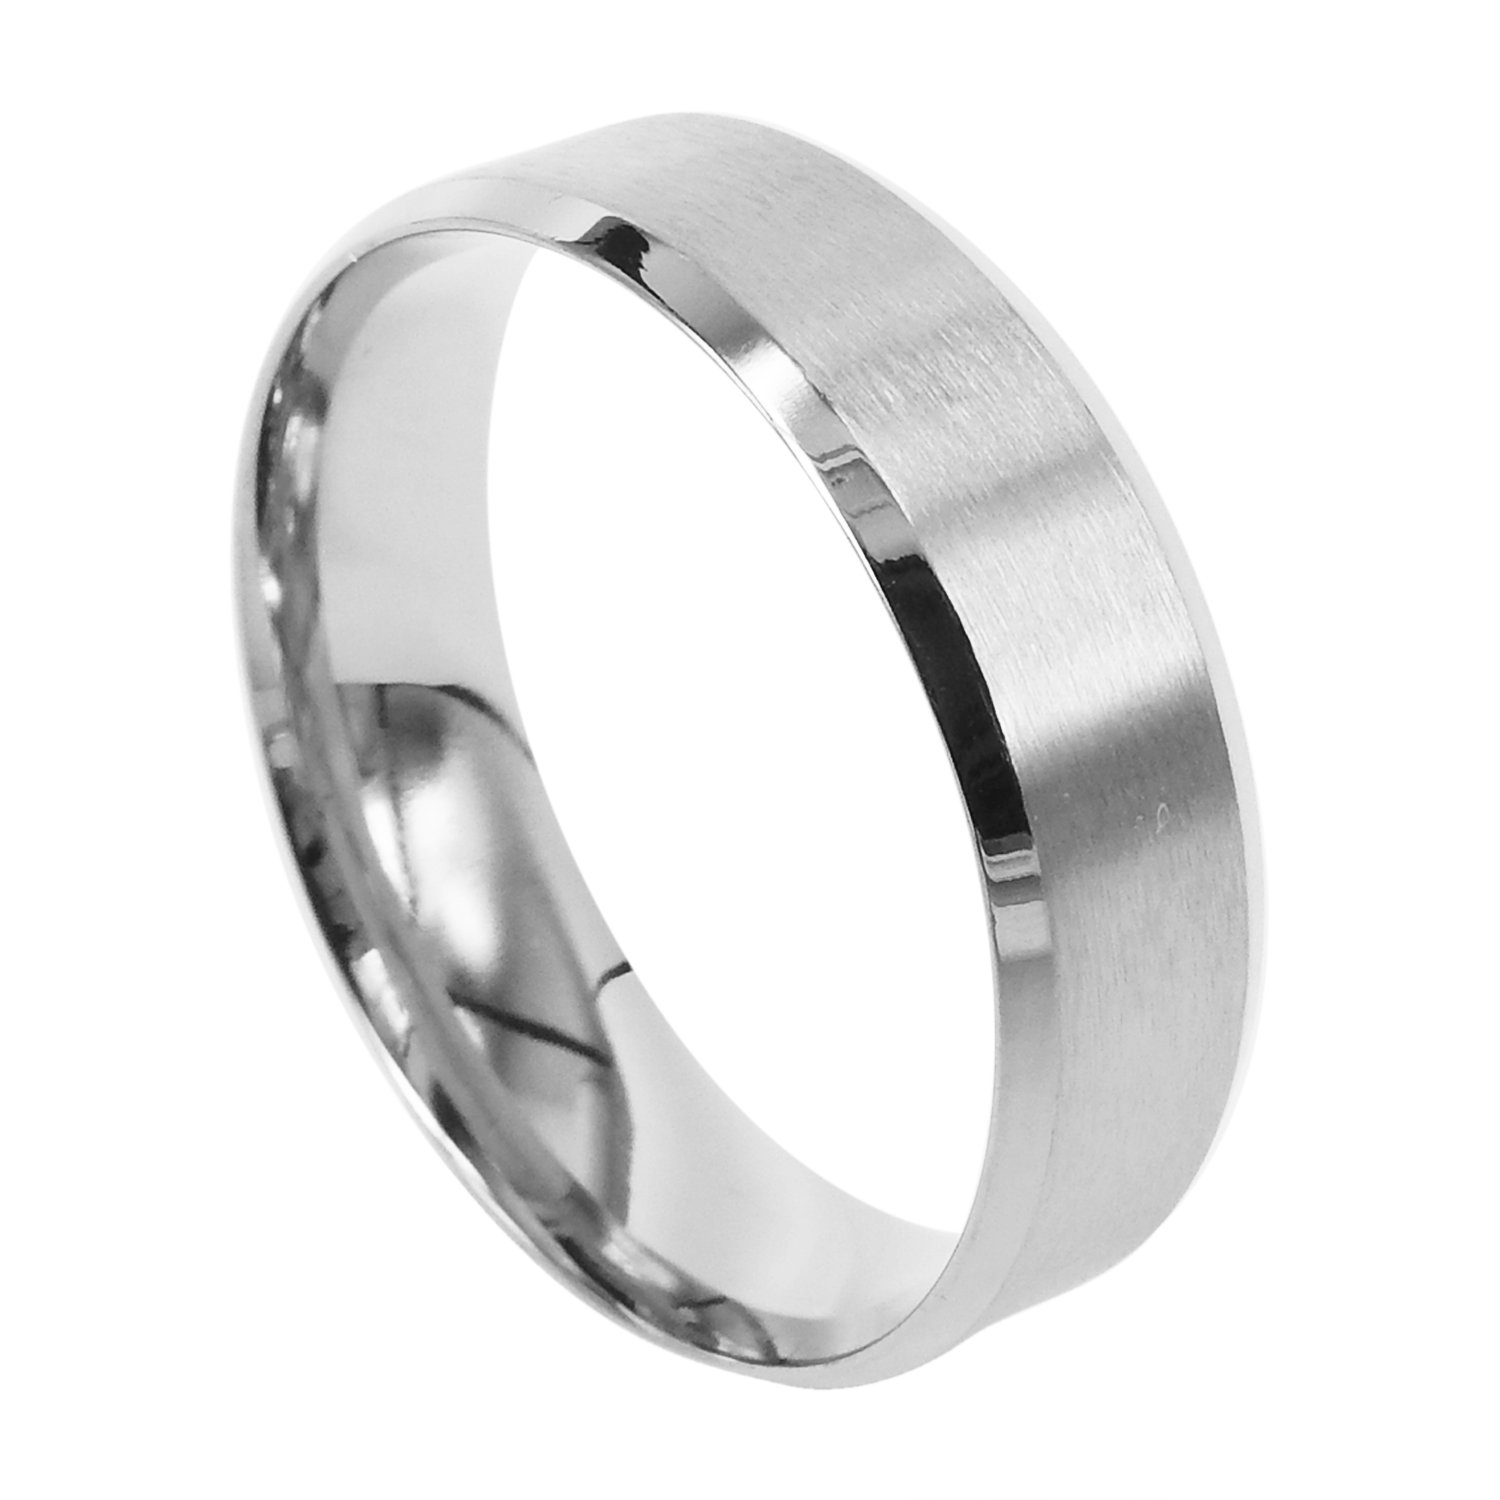 Everstone Men Titanium Ring Silver Matte Wedding Band Anniversary Engagement Ring Unisex Ring 7mm Size 3.5-16.5